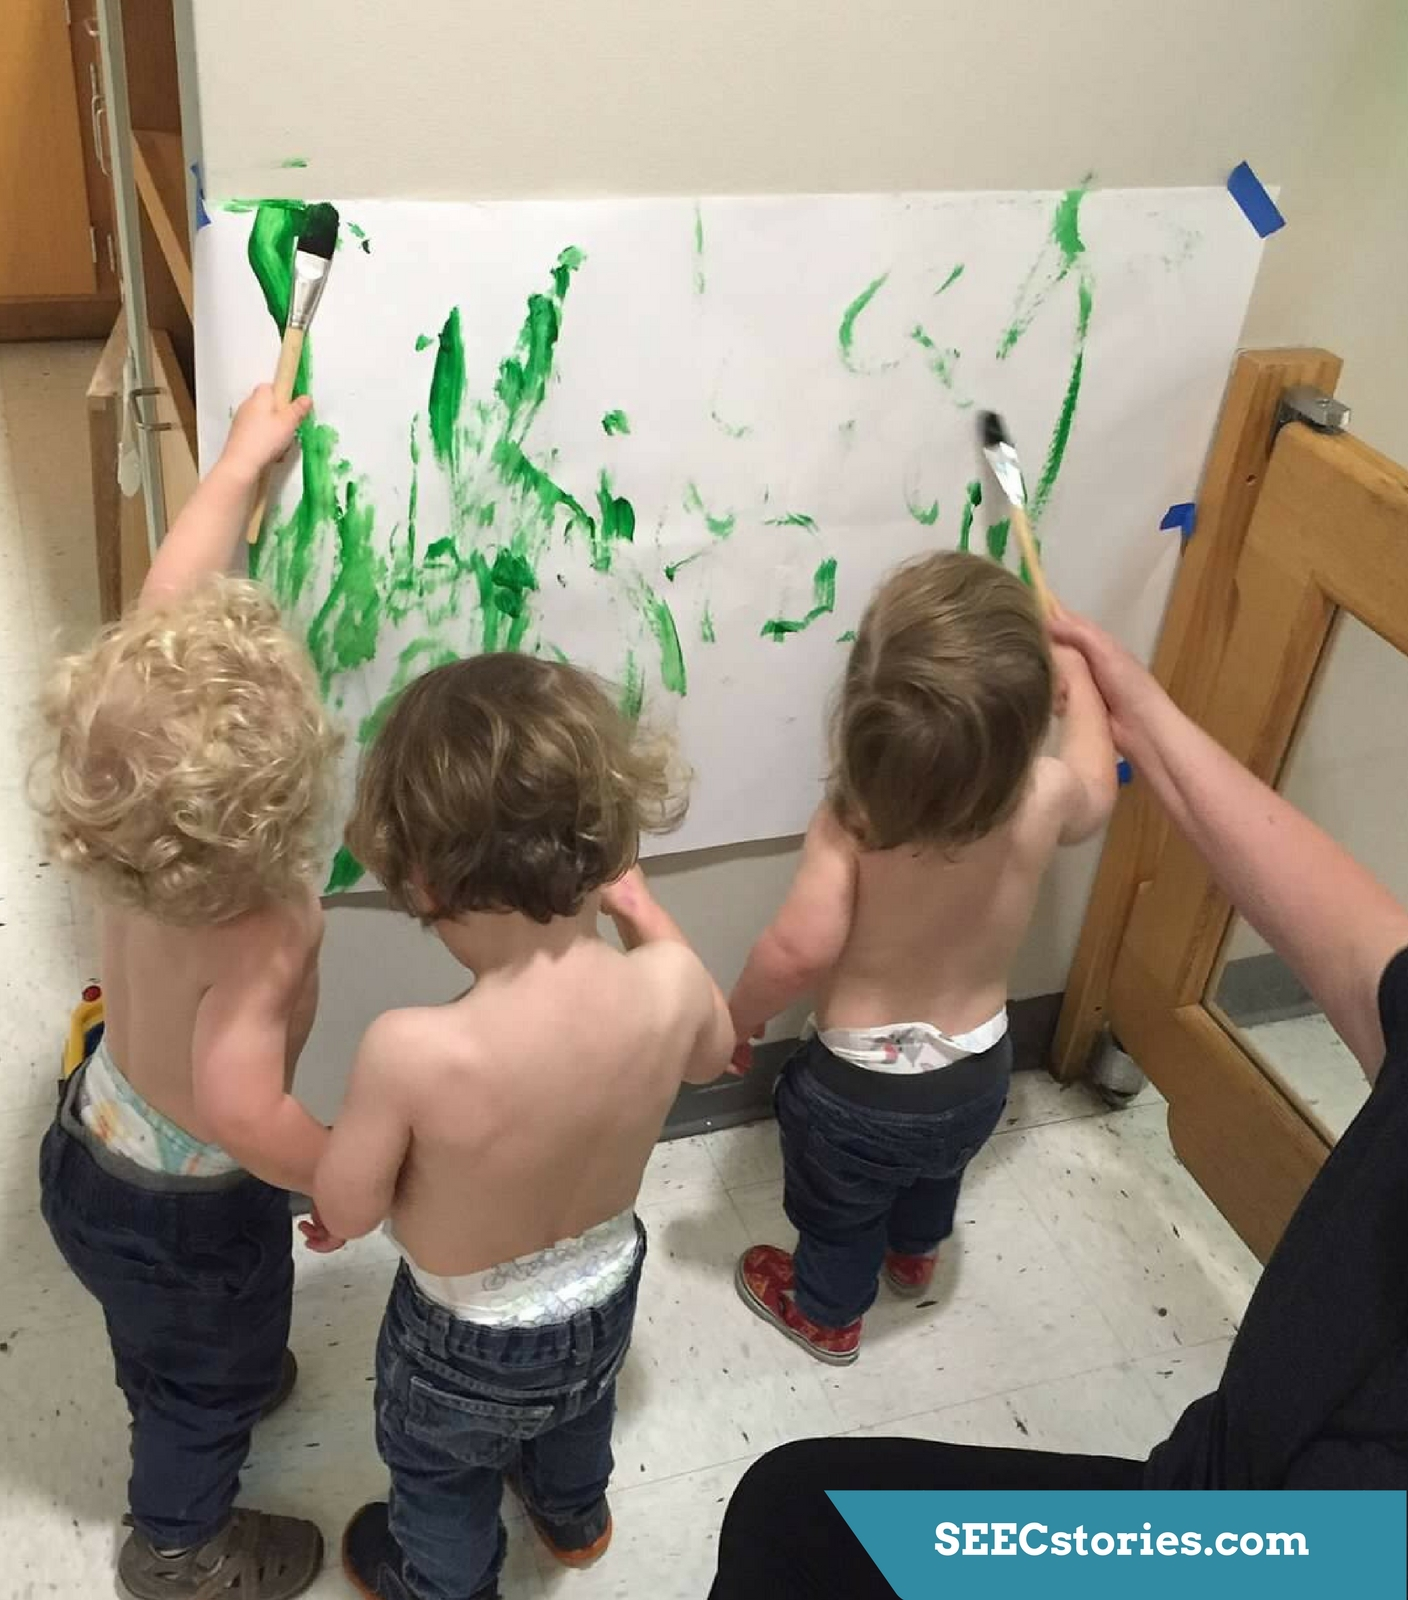 Three toddlers use paintbrushes to put green paint on a piece of large paper that is taped to the wall.